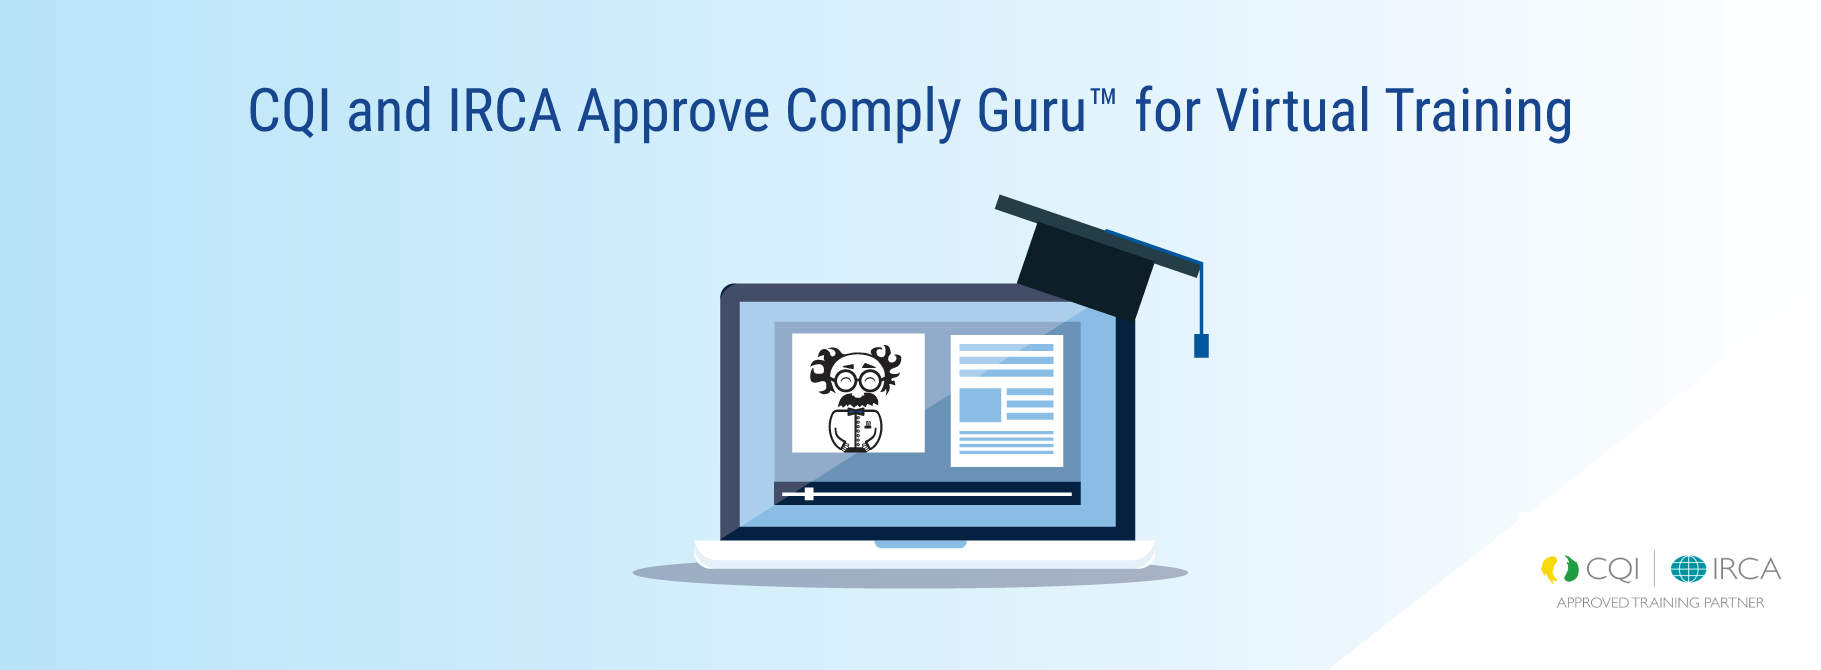 CQI & IRCA Approves Comply Guru's Virtual Training